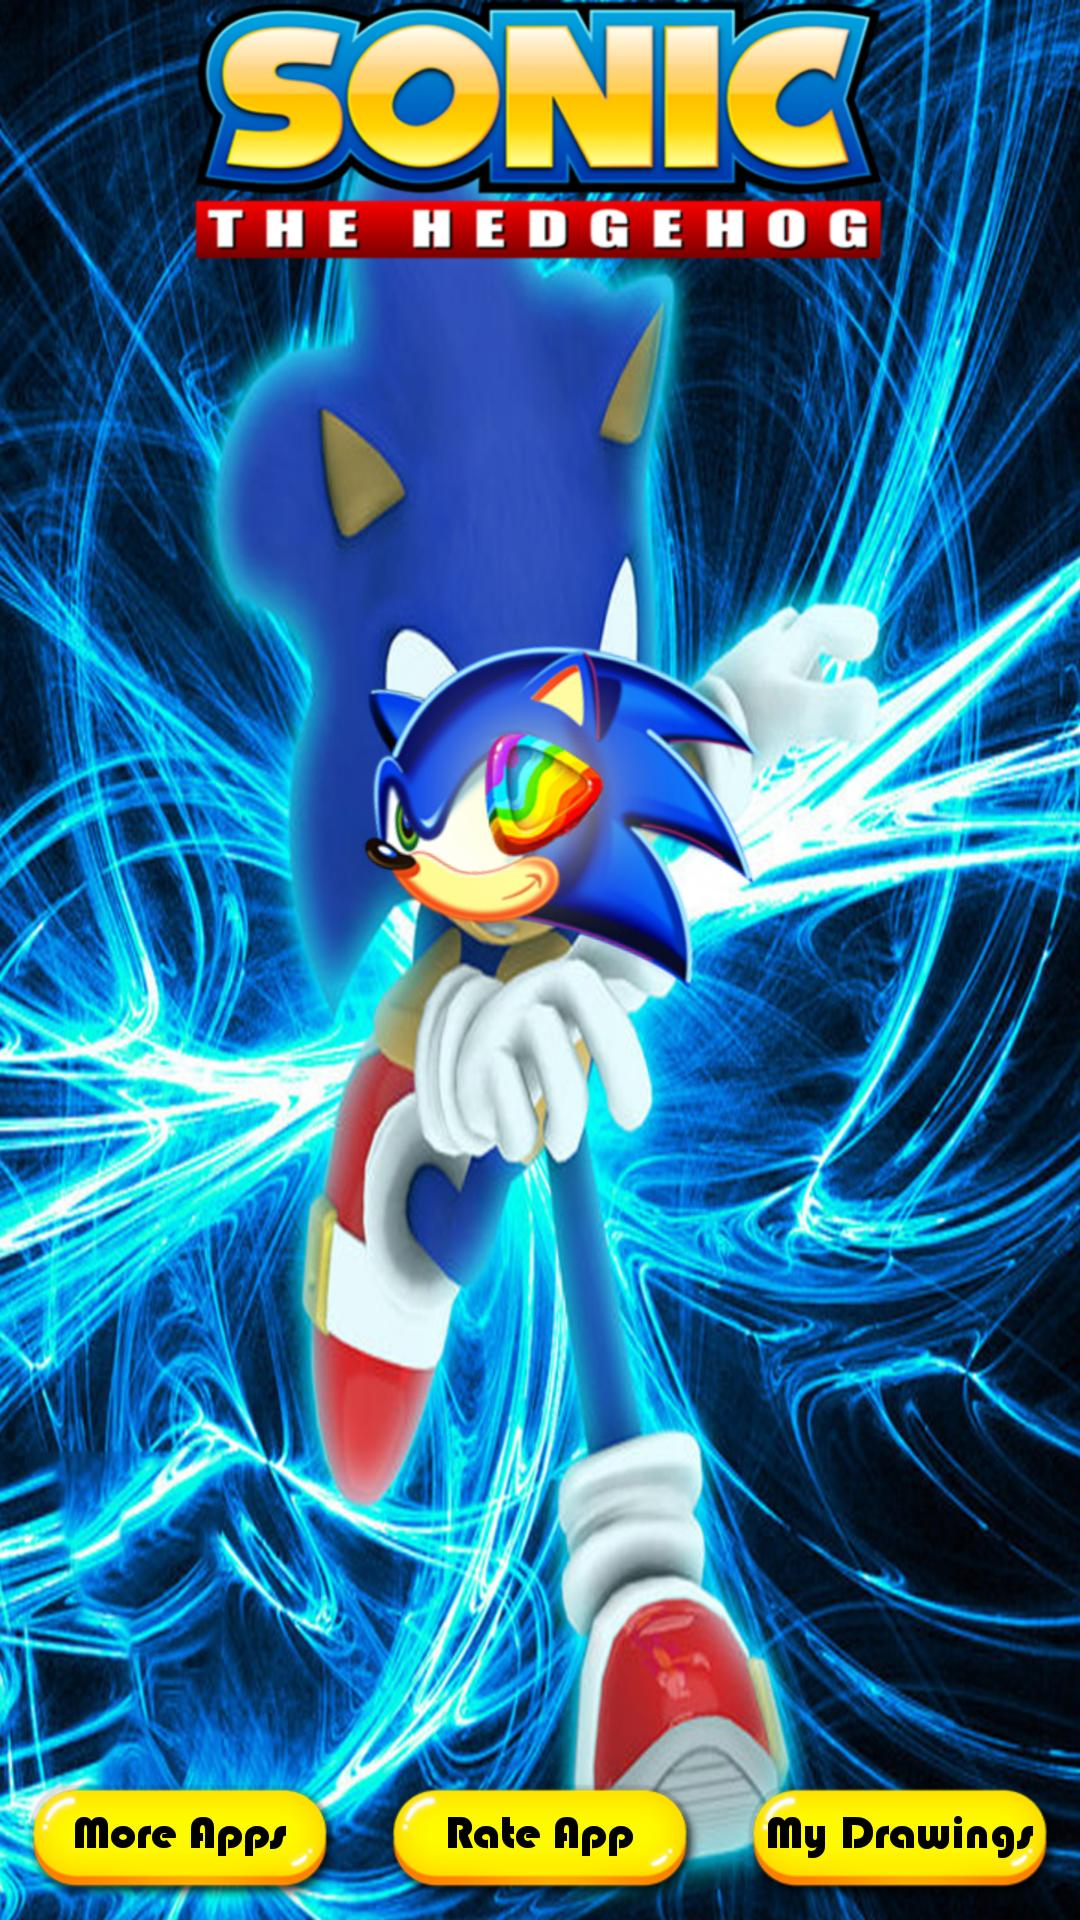 coloring sonic dash fan for android - apk download